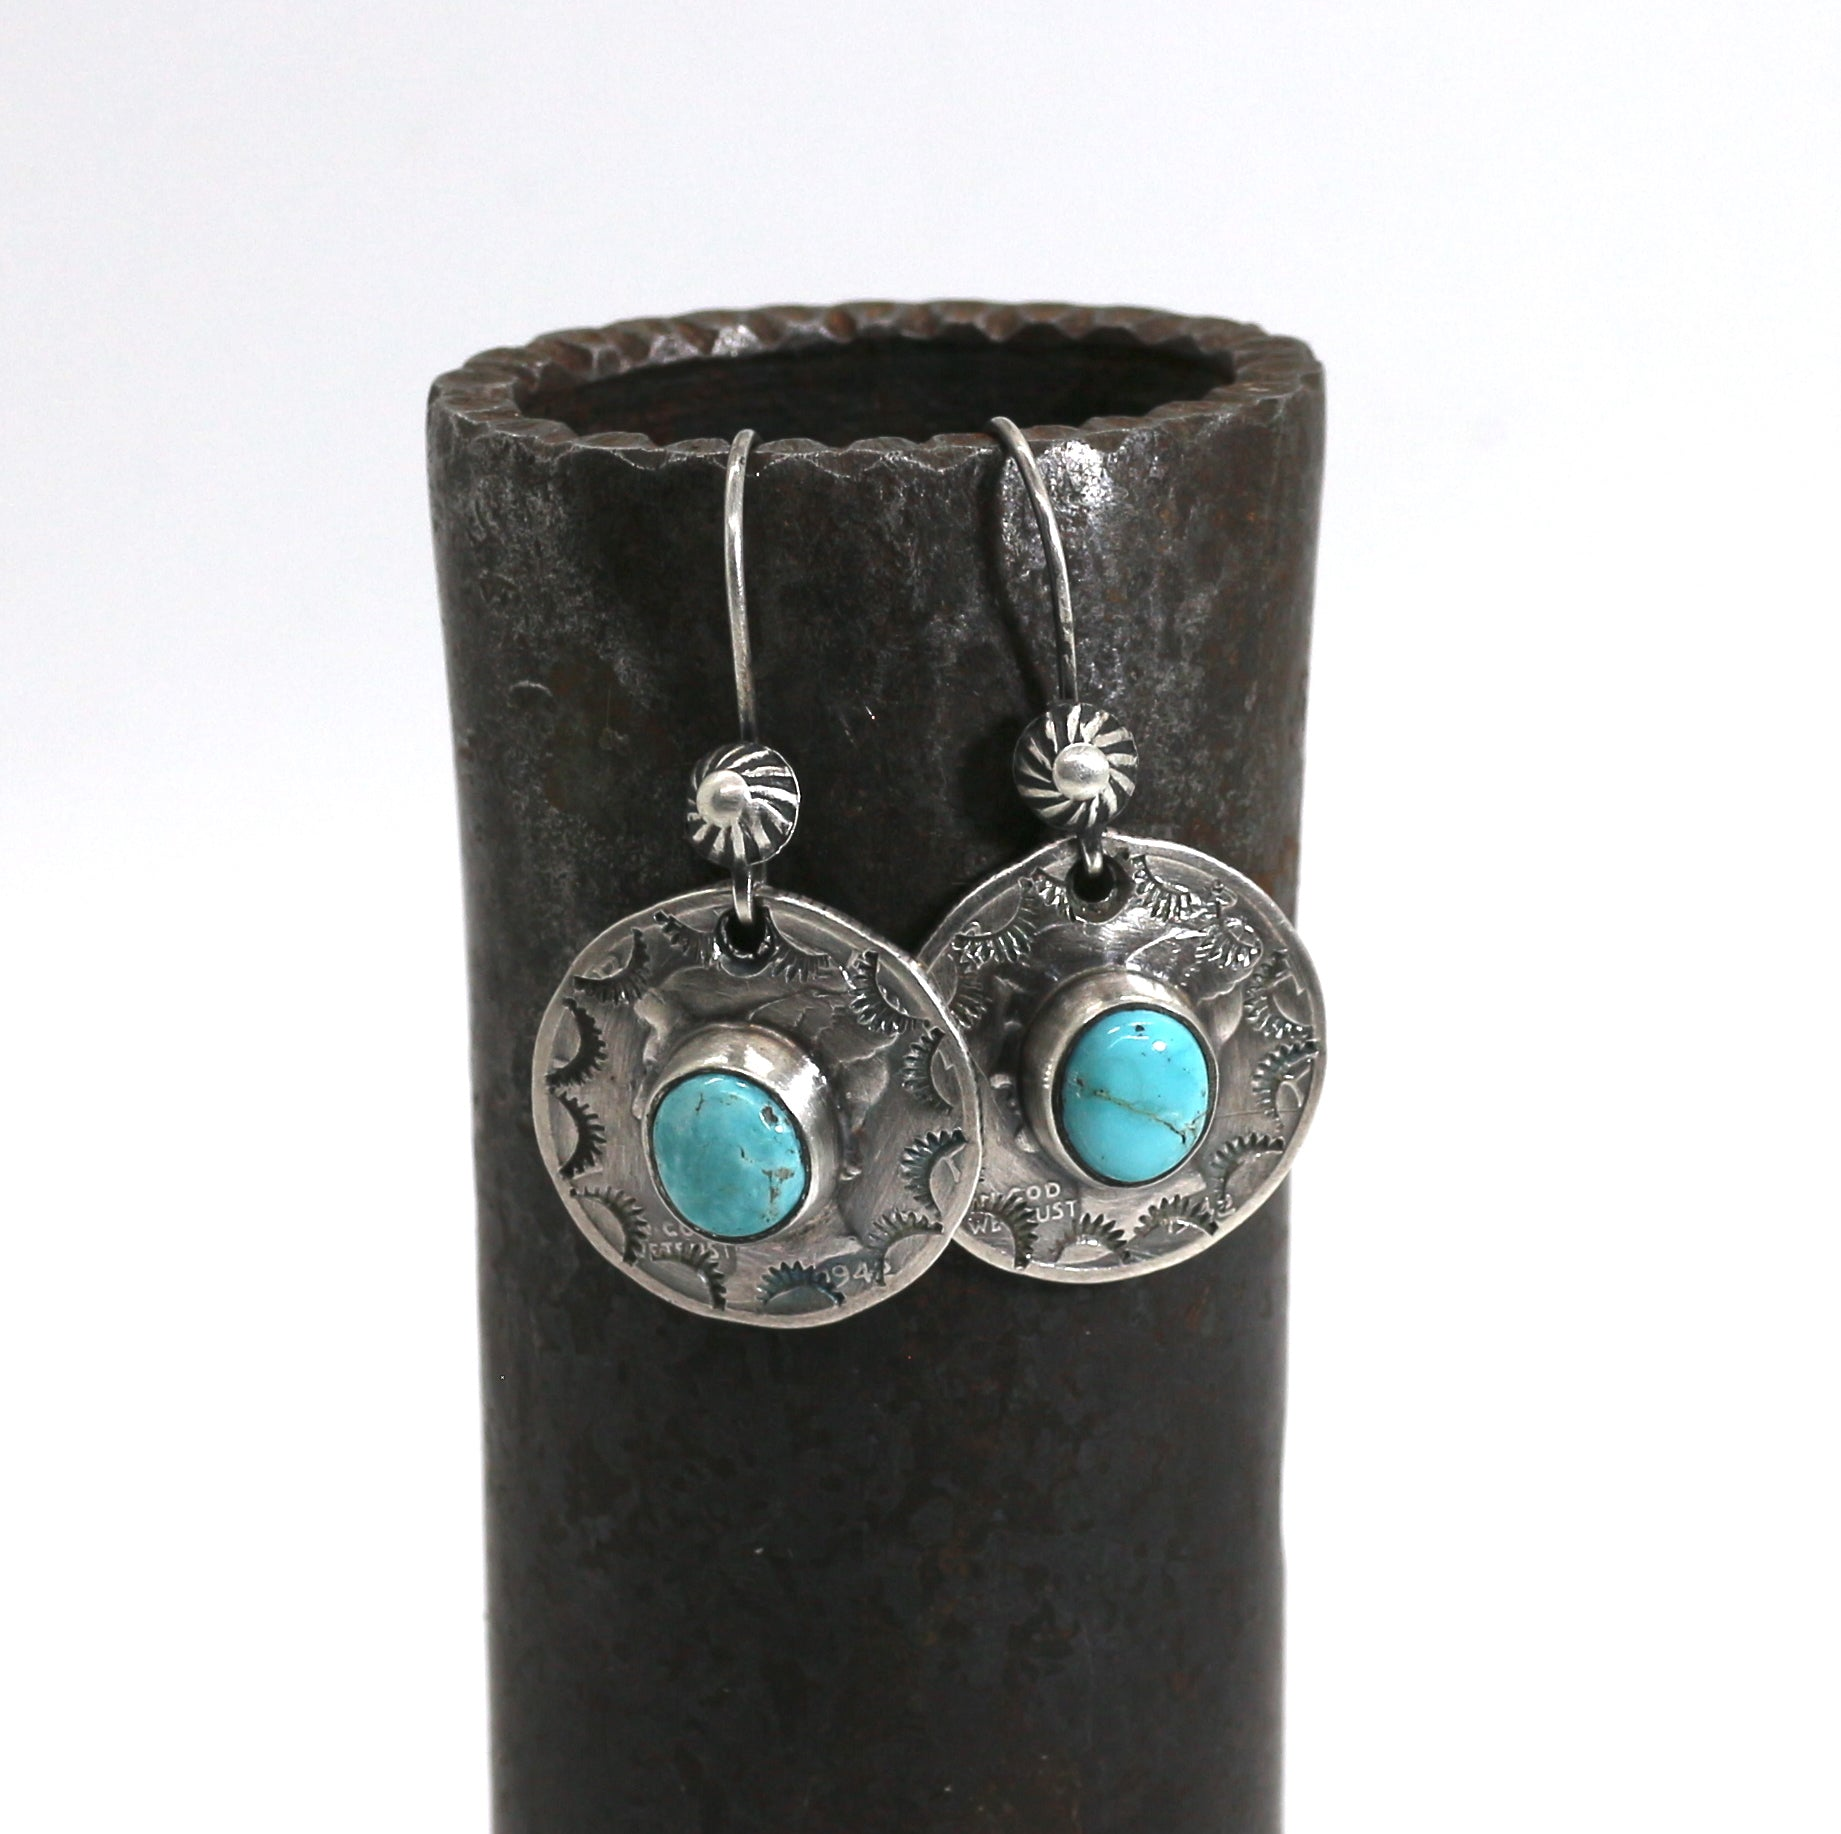 Jesse Robbins Mercury Dime earrings with Misty Blue